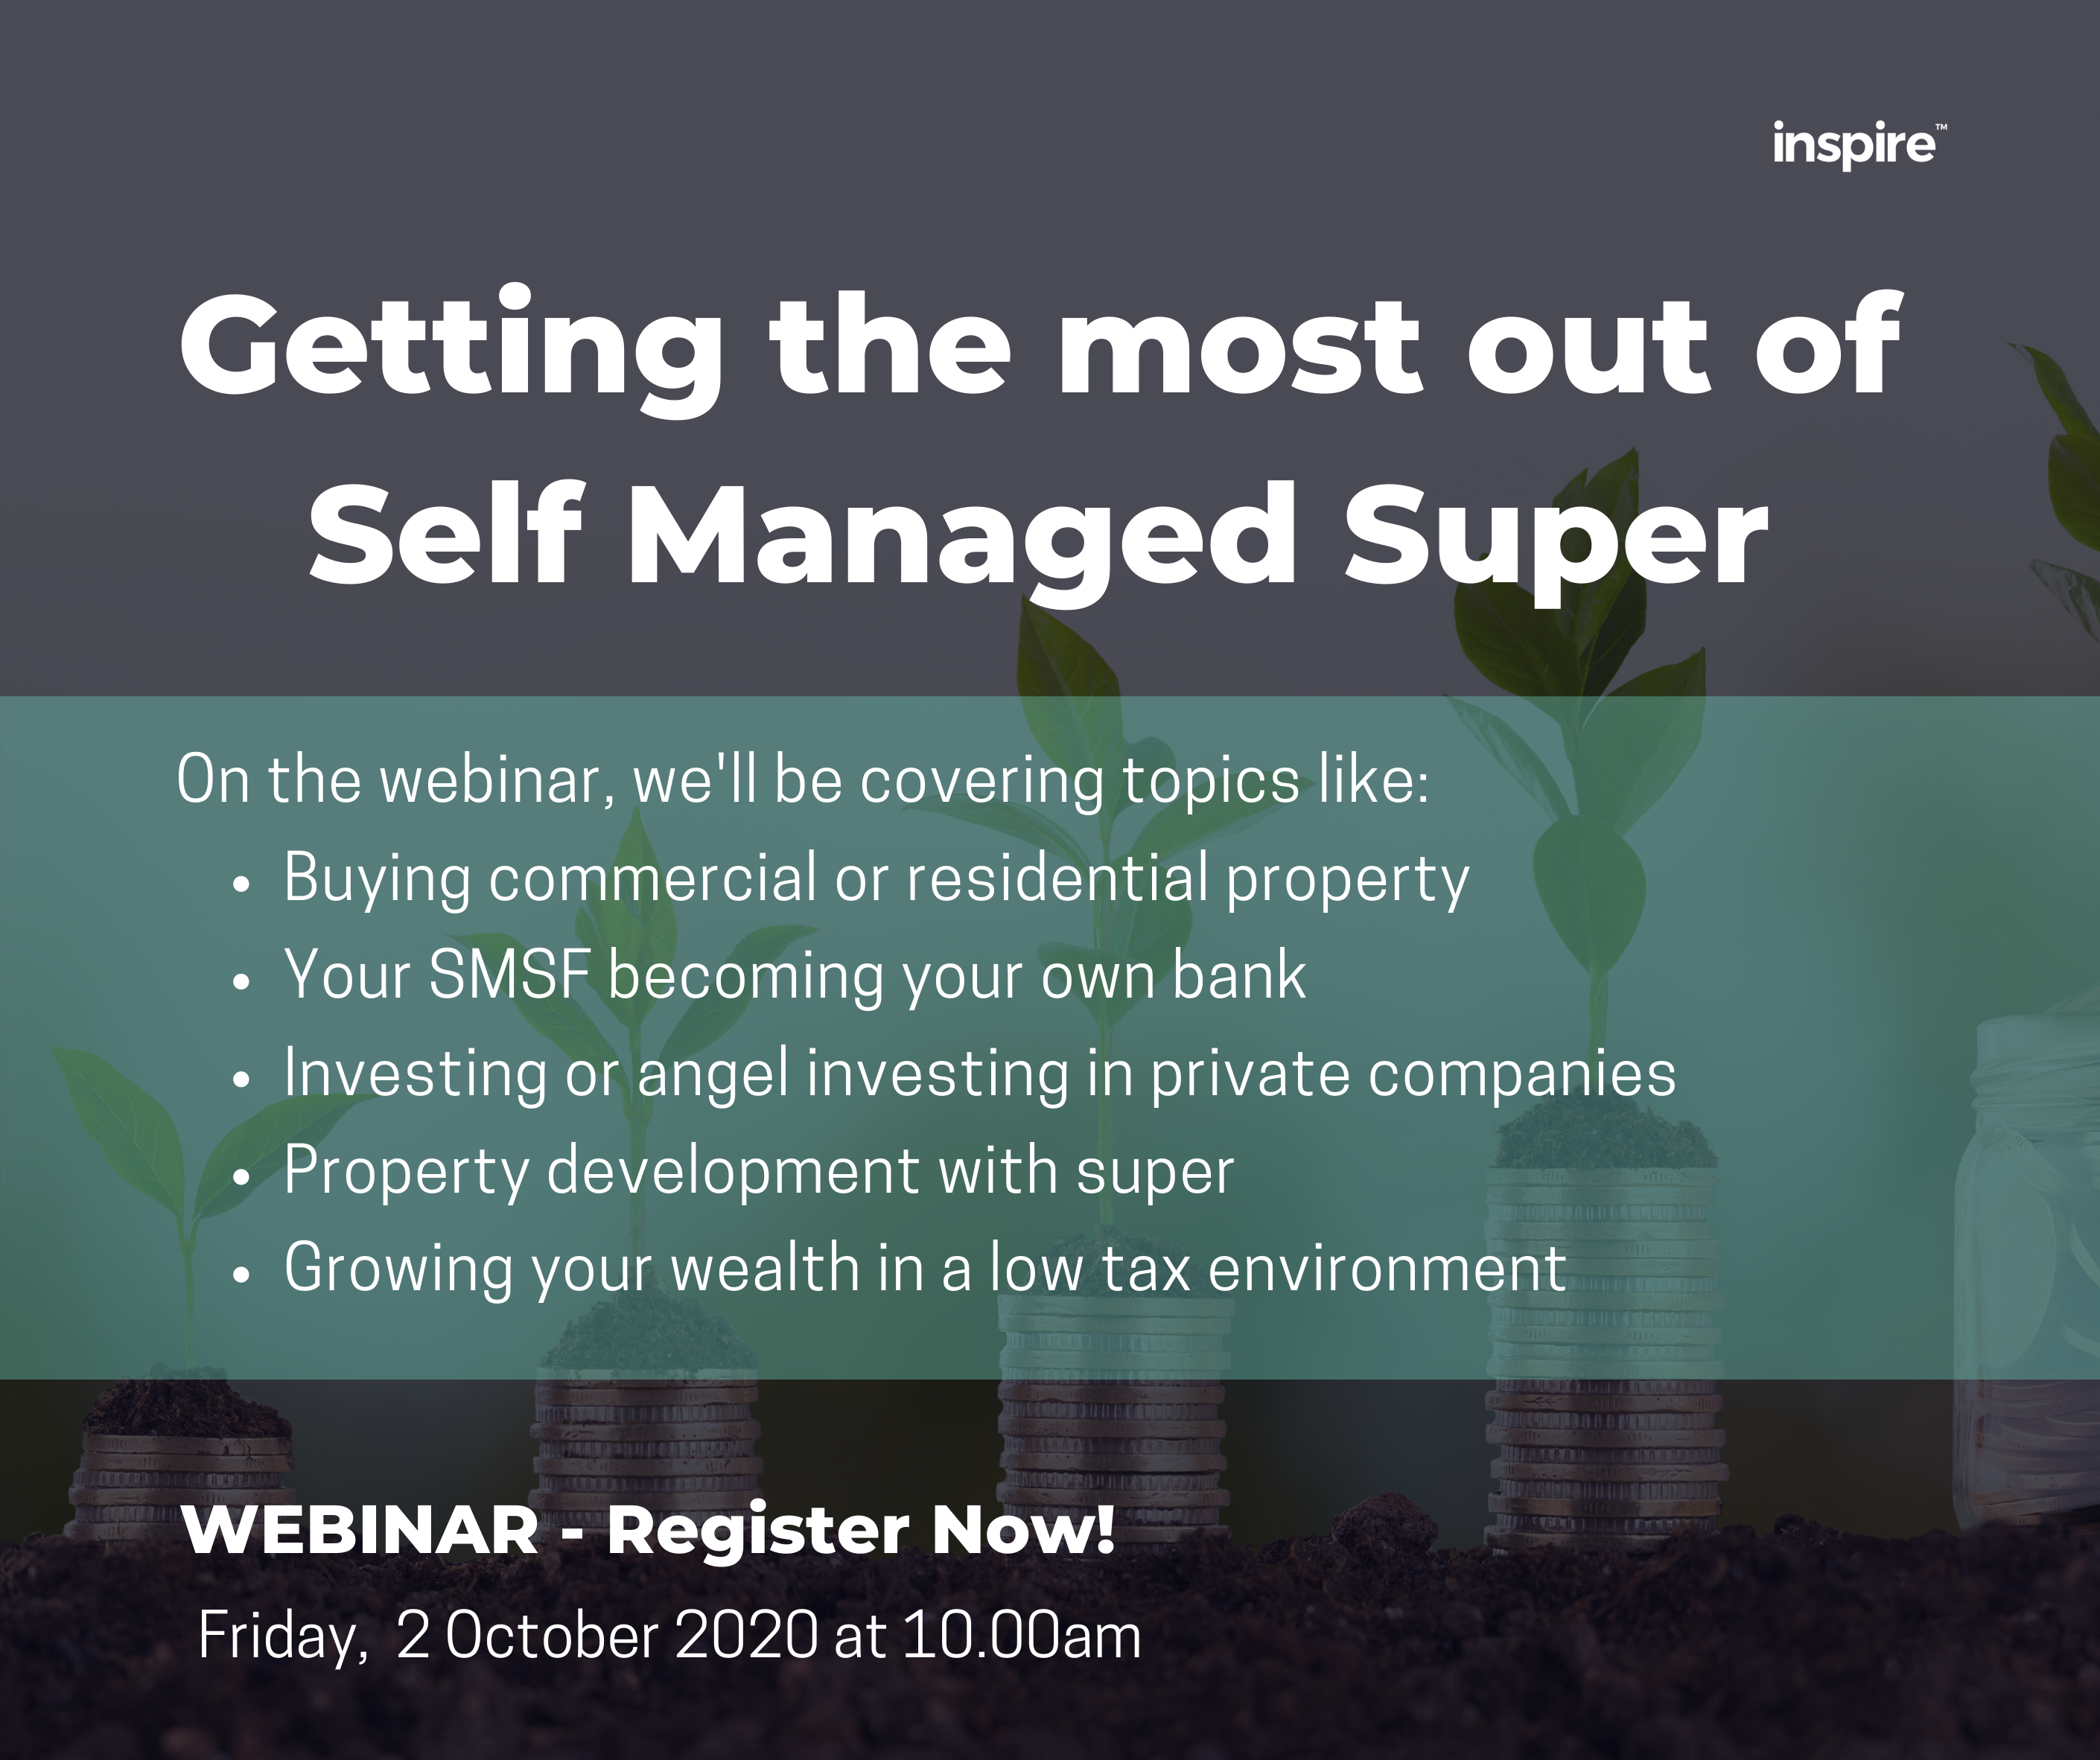 FB Copy of Getting the most out of Self Managed Super